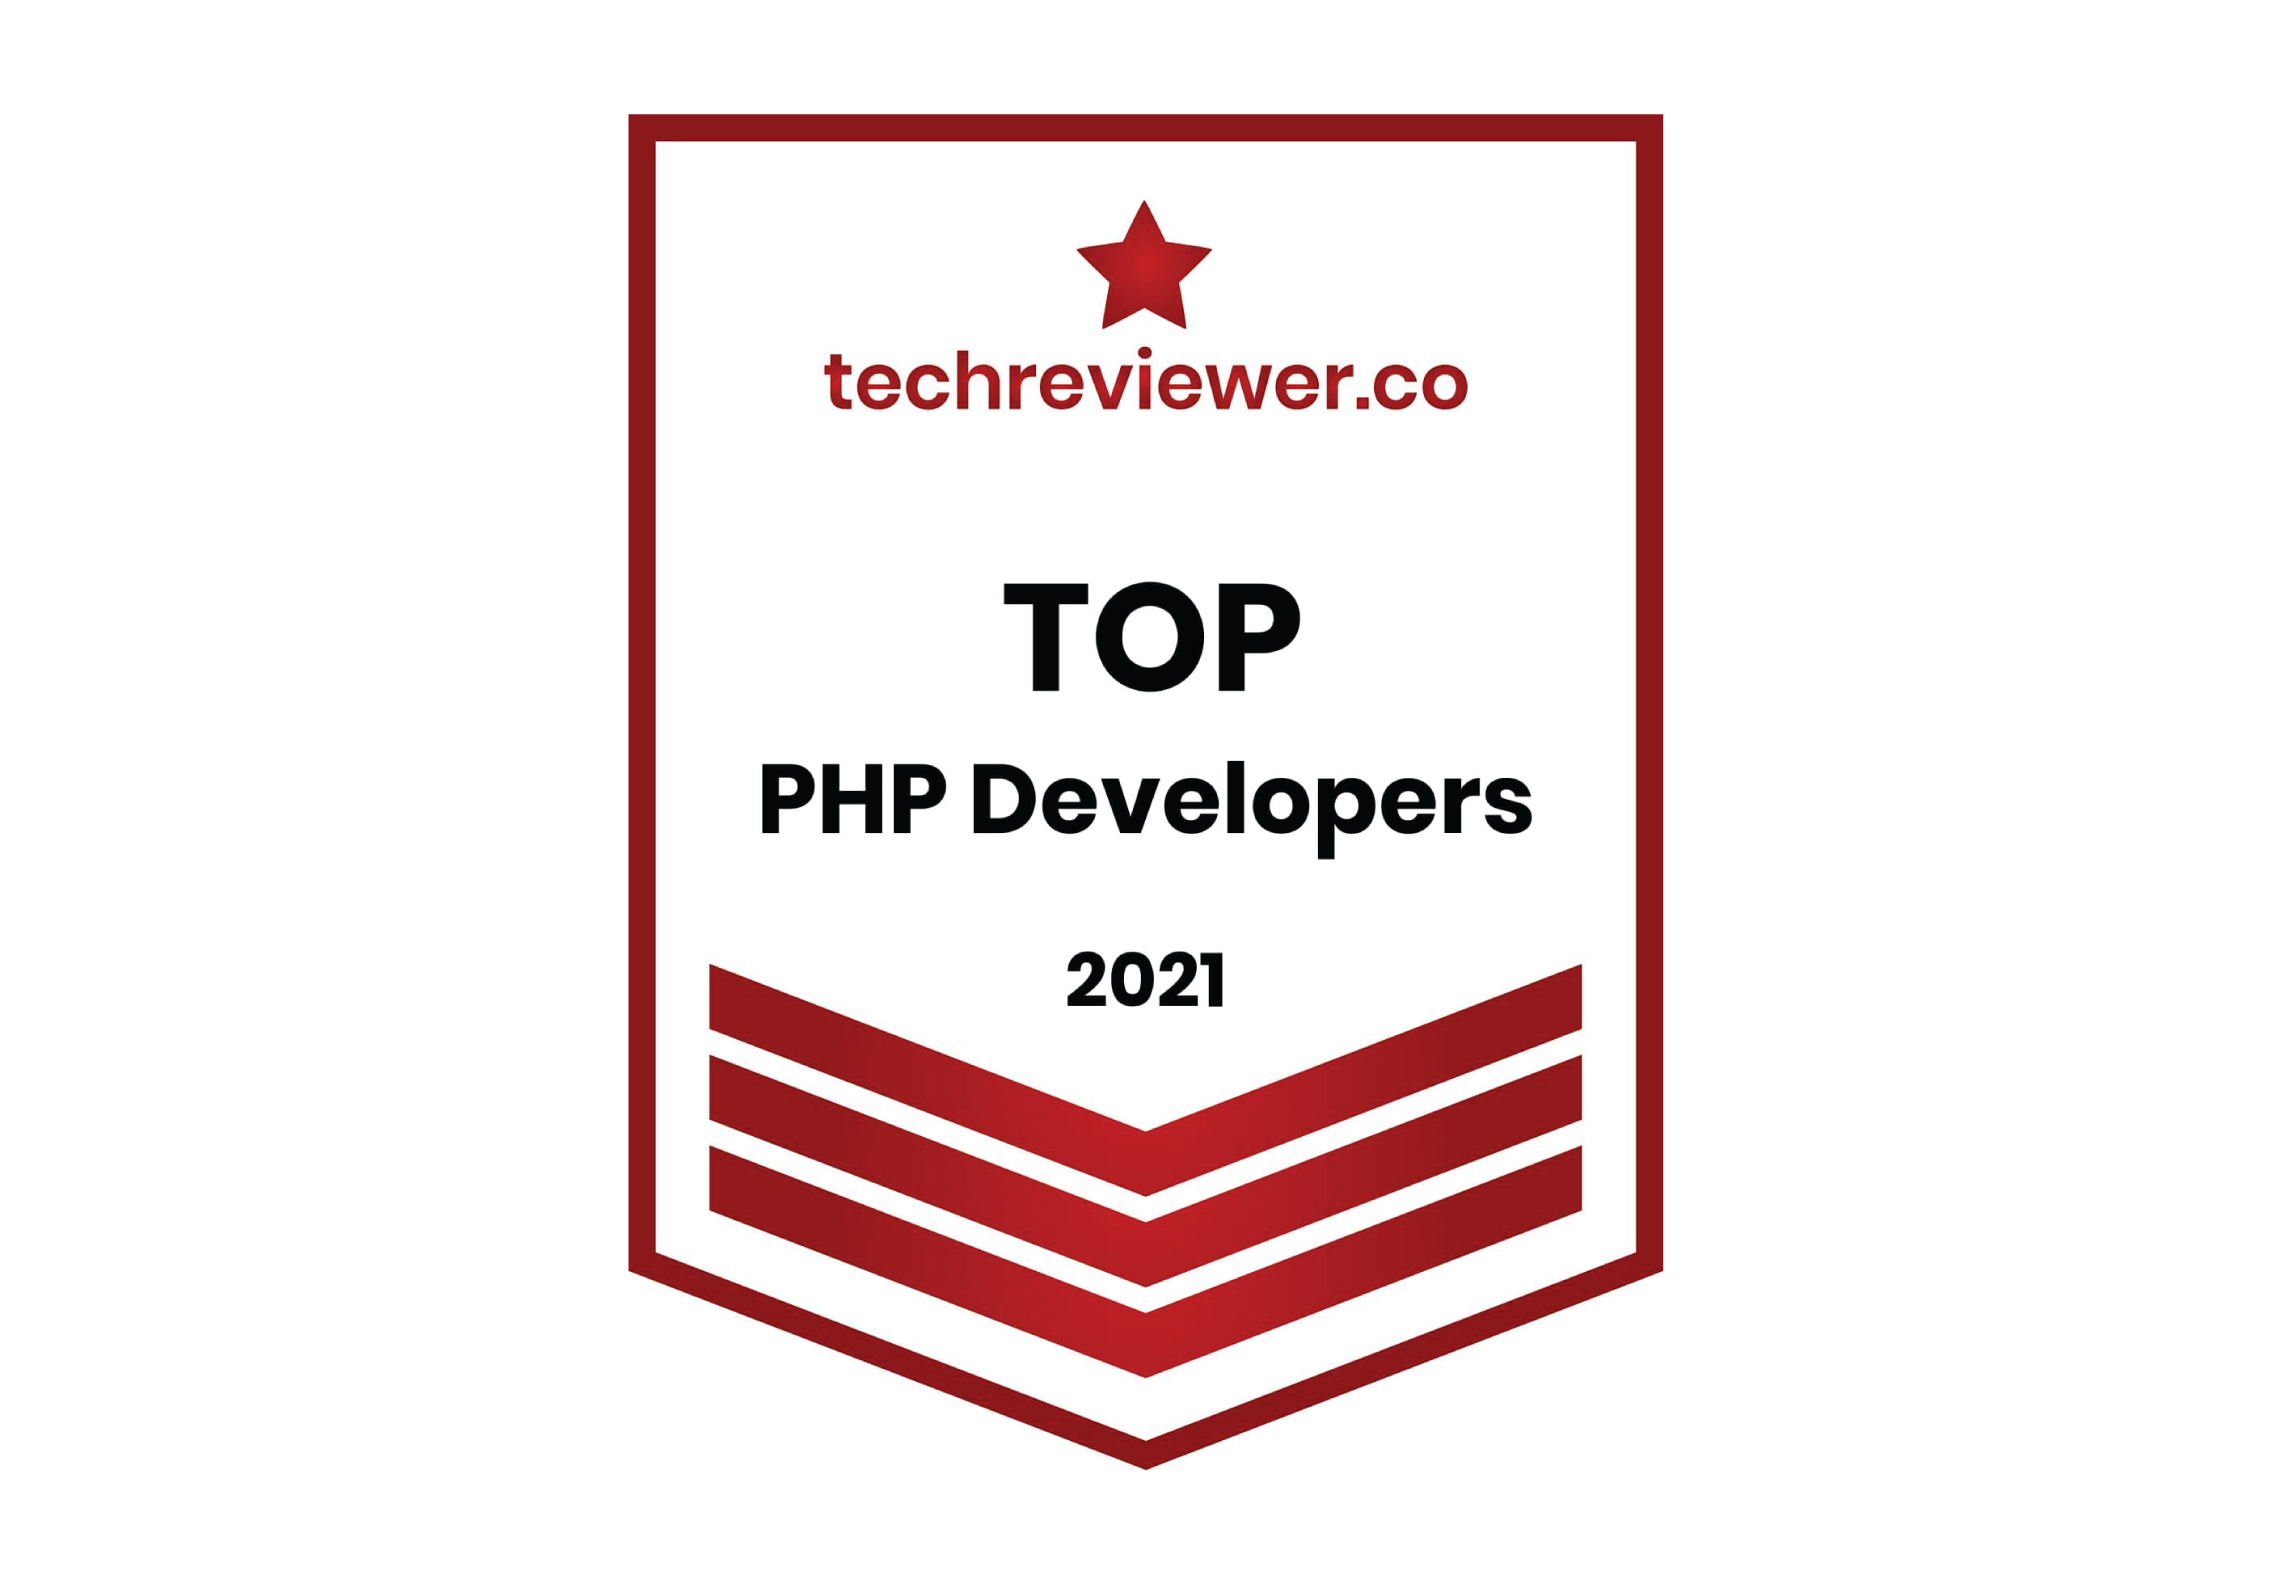 Knovator Technologies is Among Top PHP Development Companies in 2021